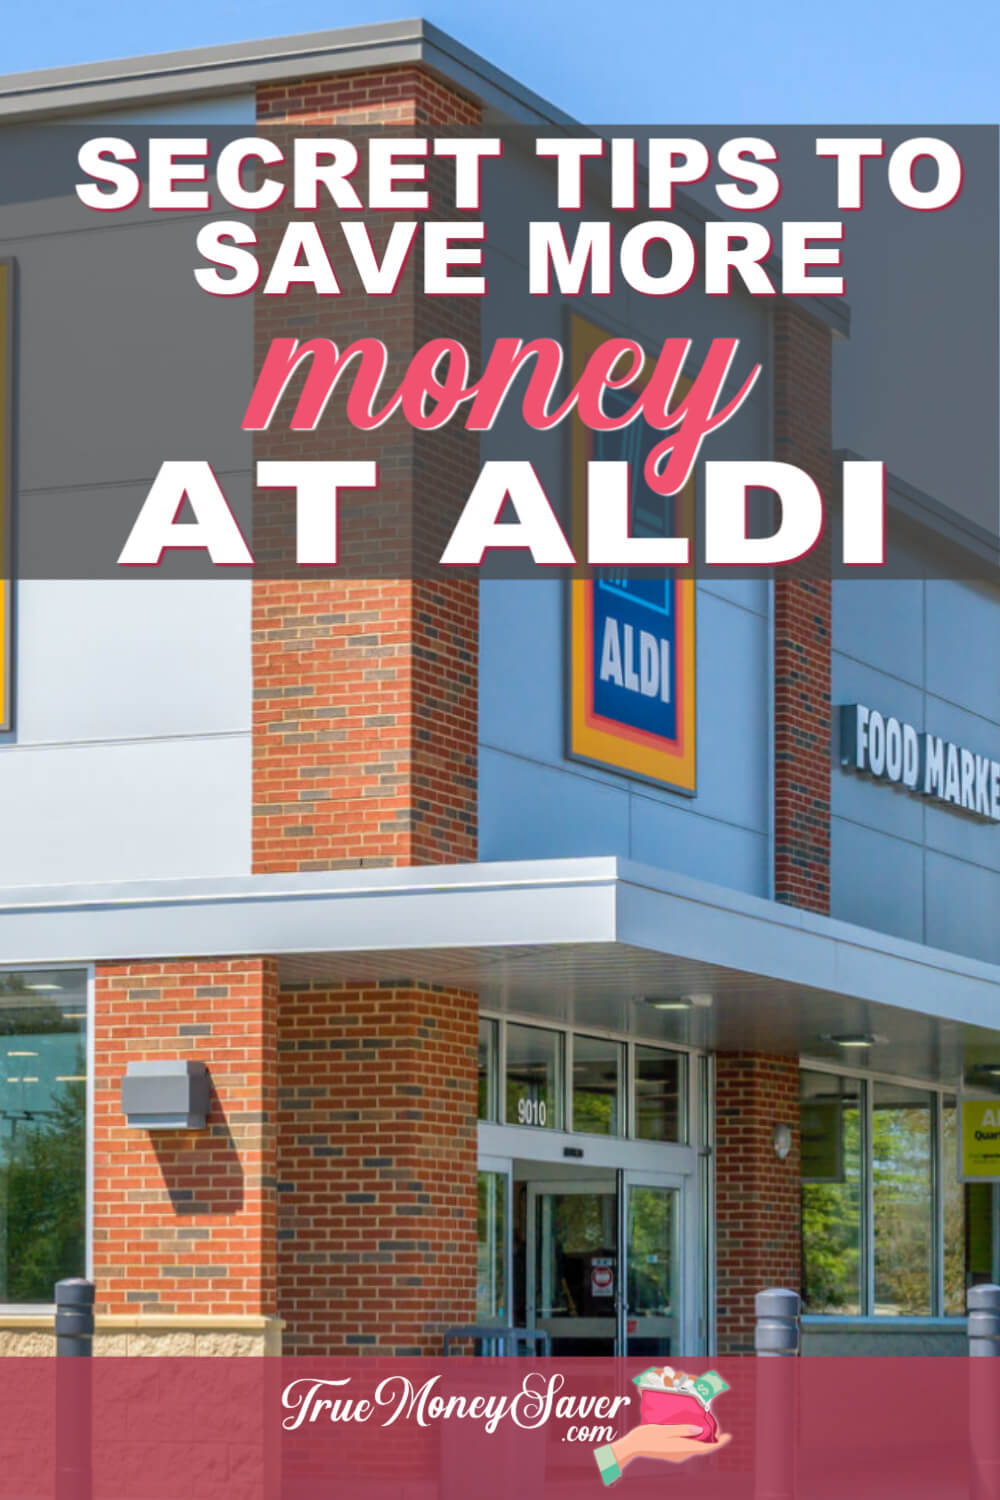 Groceries can be so expensive. Don\'t miss out on these SECRET ways that you can save even more at Aldi! #truecouponing #aldi #groceries #groceryshopping #savings